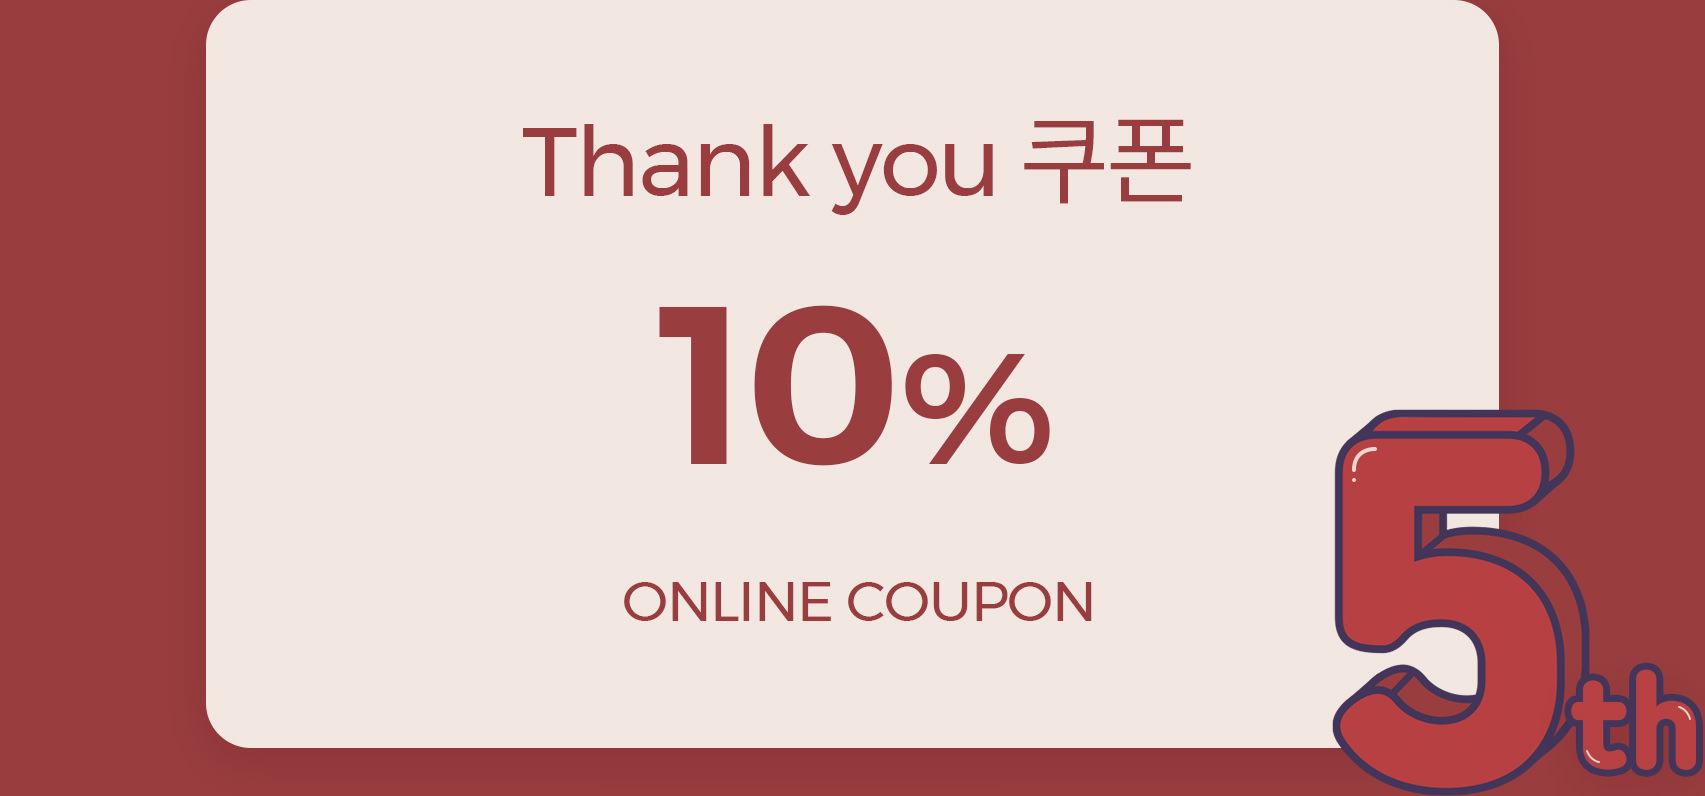 Thank you 10% ONLINE COUPON